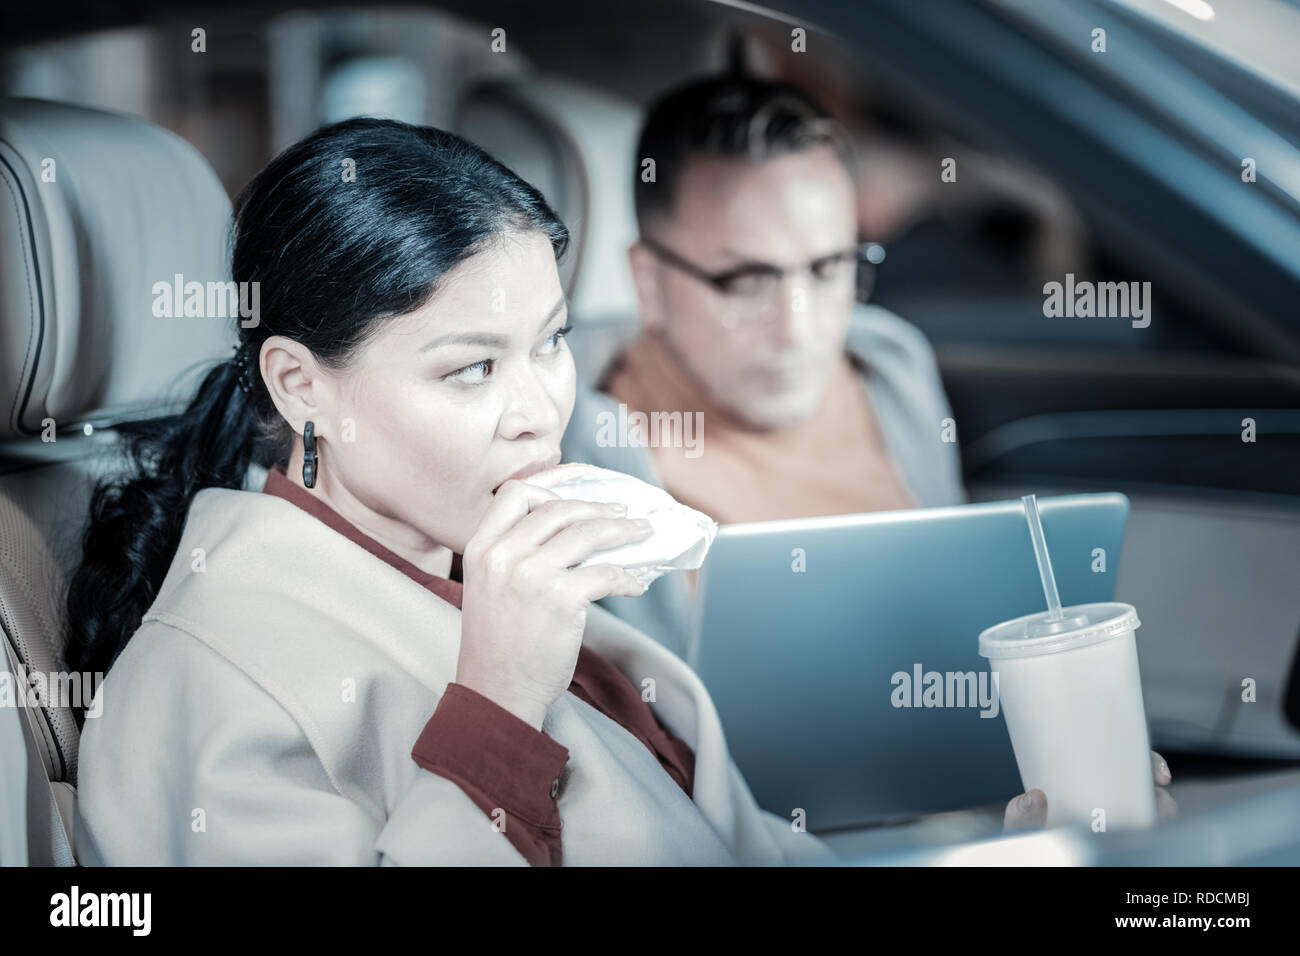 Husband and wife eating junk food sitting in their car - Stock Image